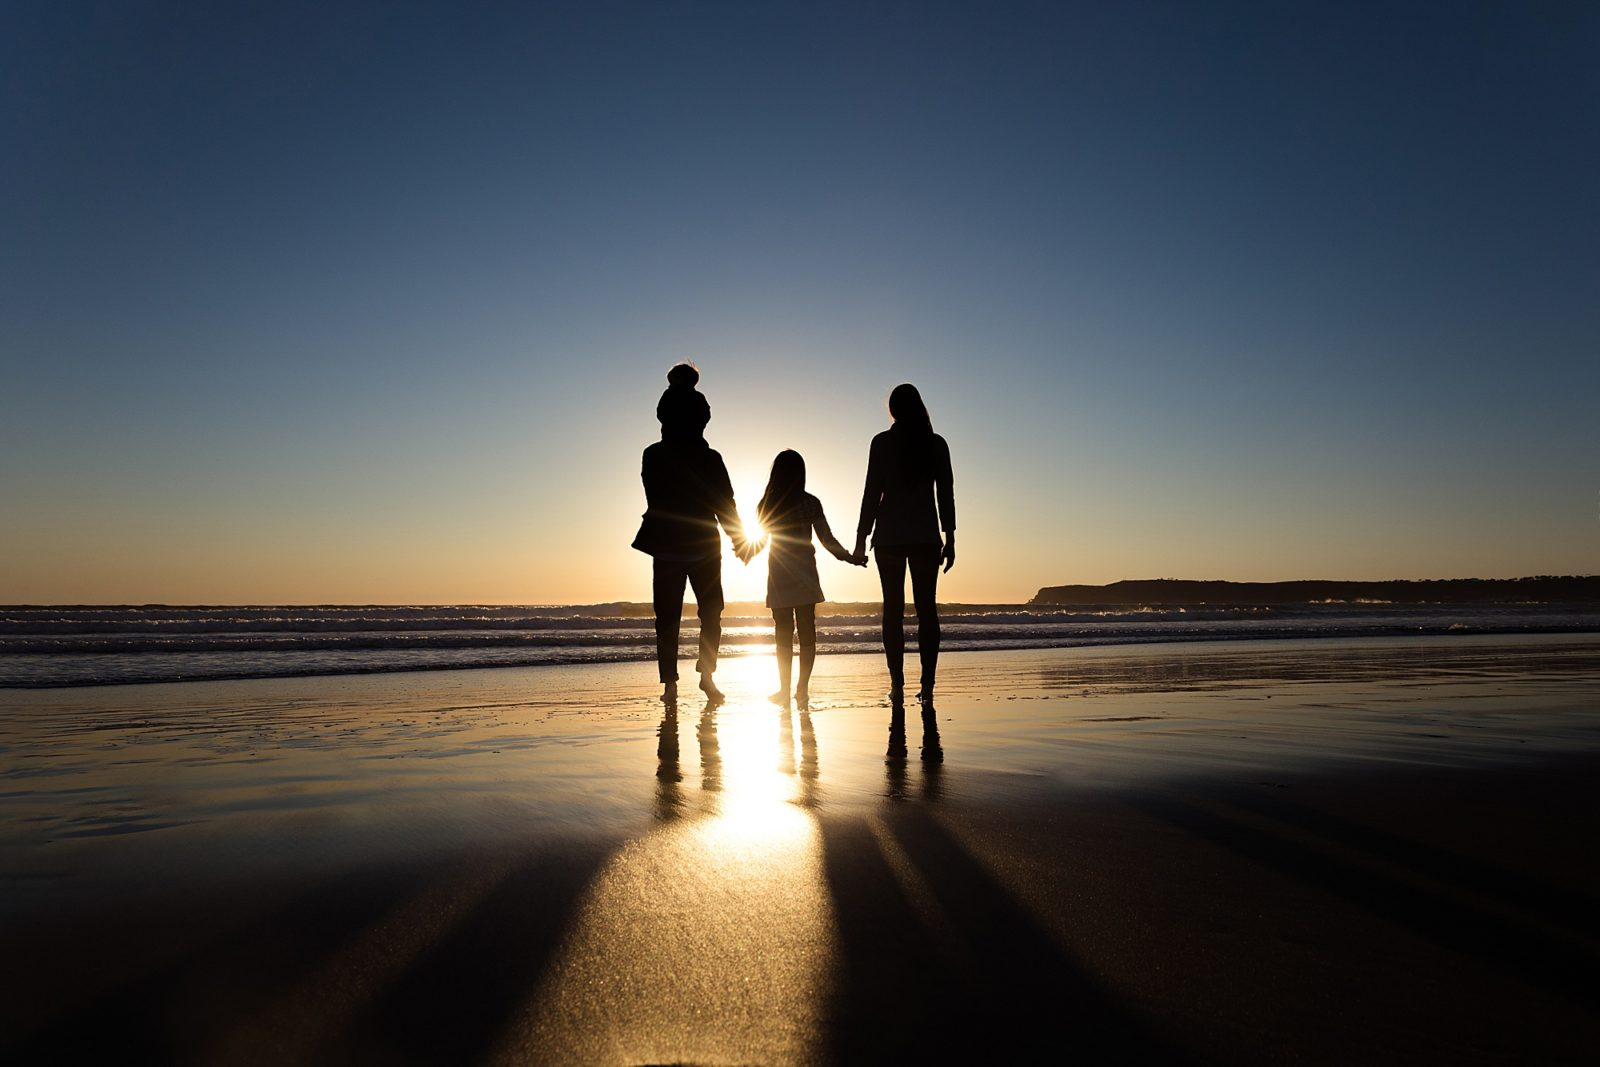 Silhouette of San Diego | Family Sunset Photo